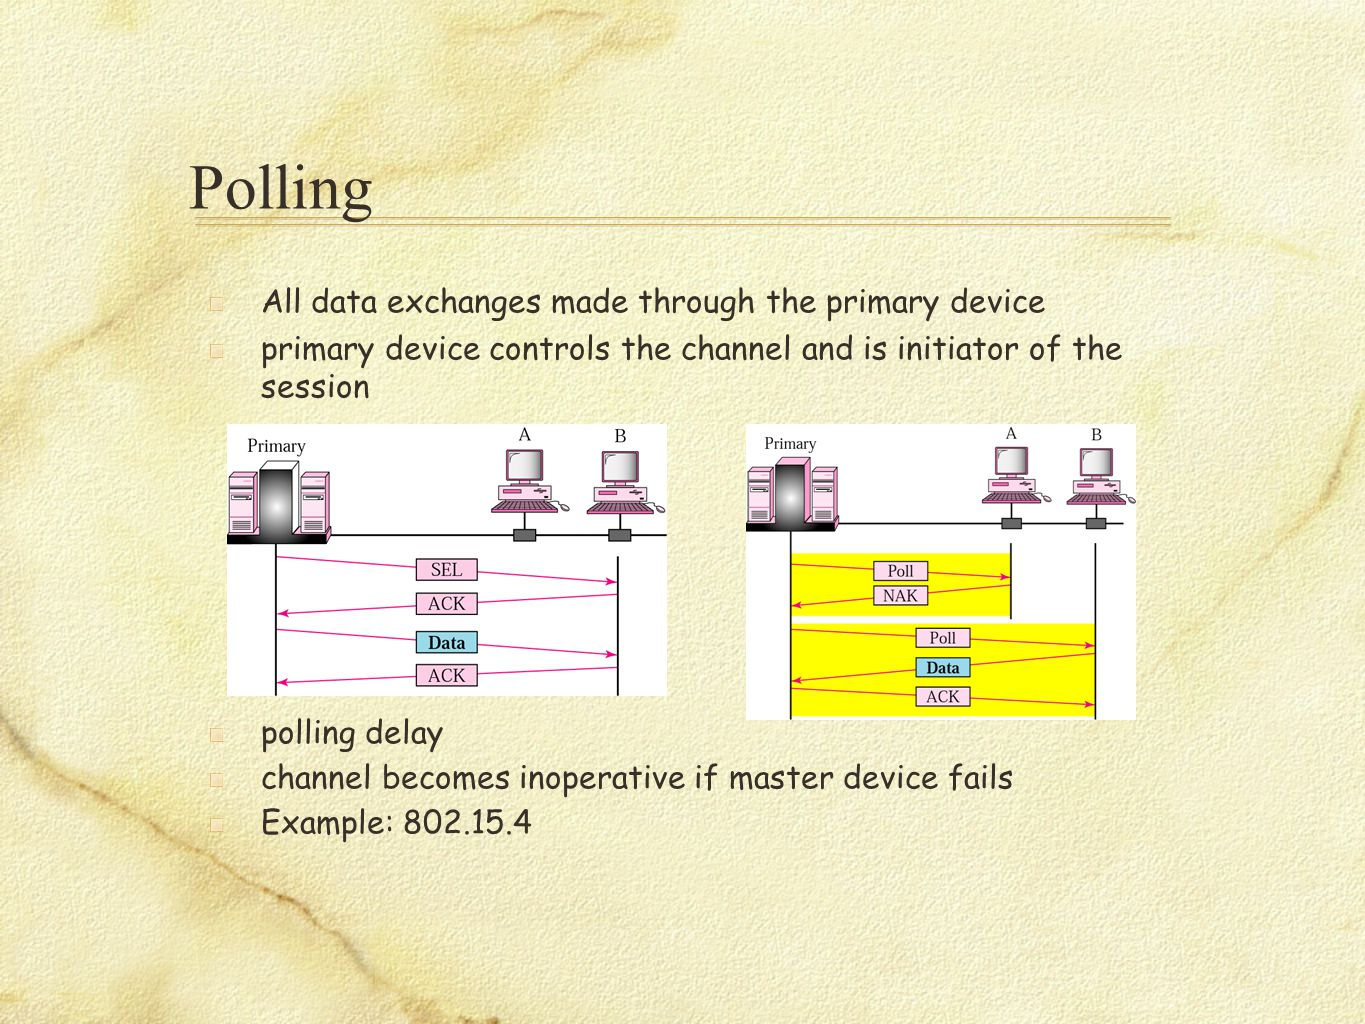 Polling All data exchanges made through the primary device primary device controls the channel and is initiator of the session polling delay channel becomes inoperative if master device fails Example: 802.15.4